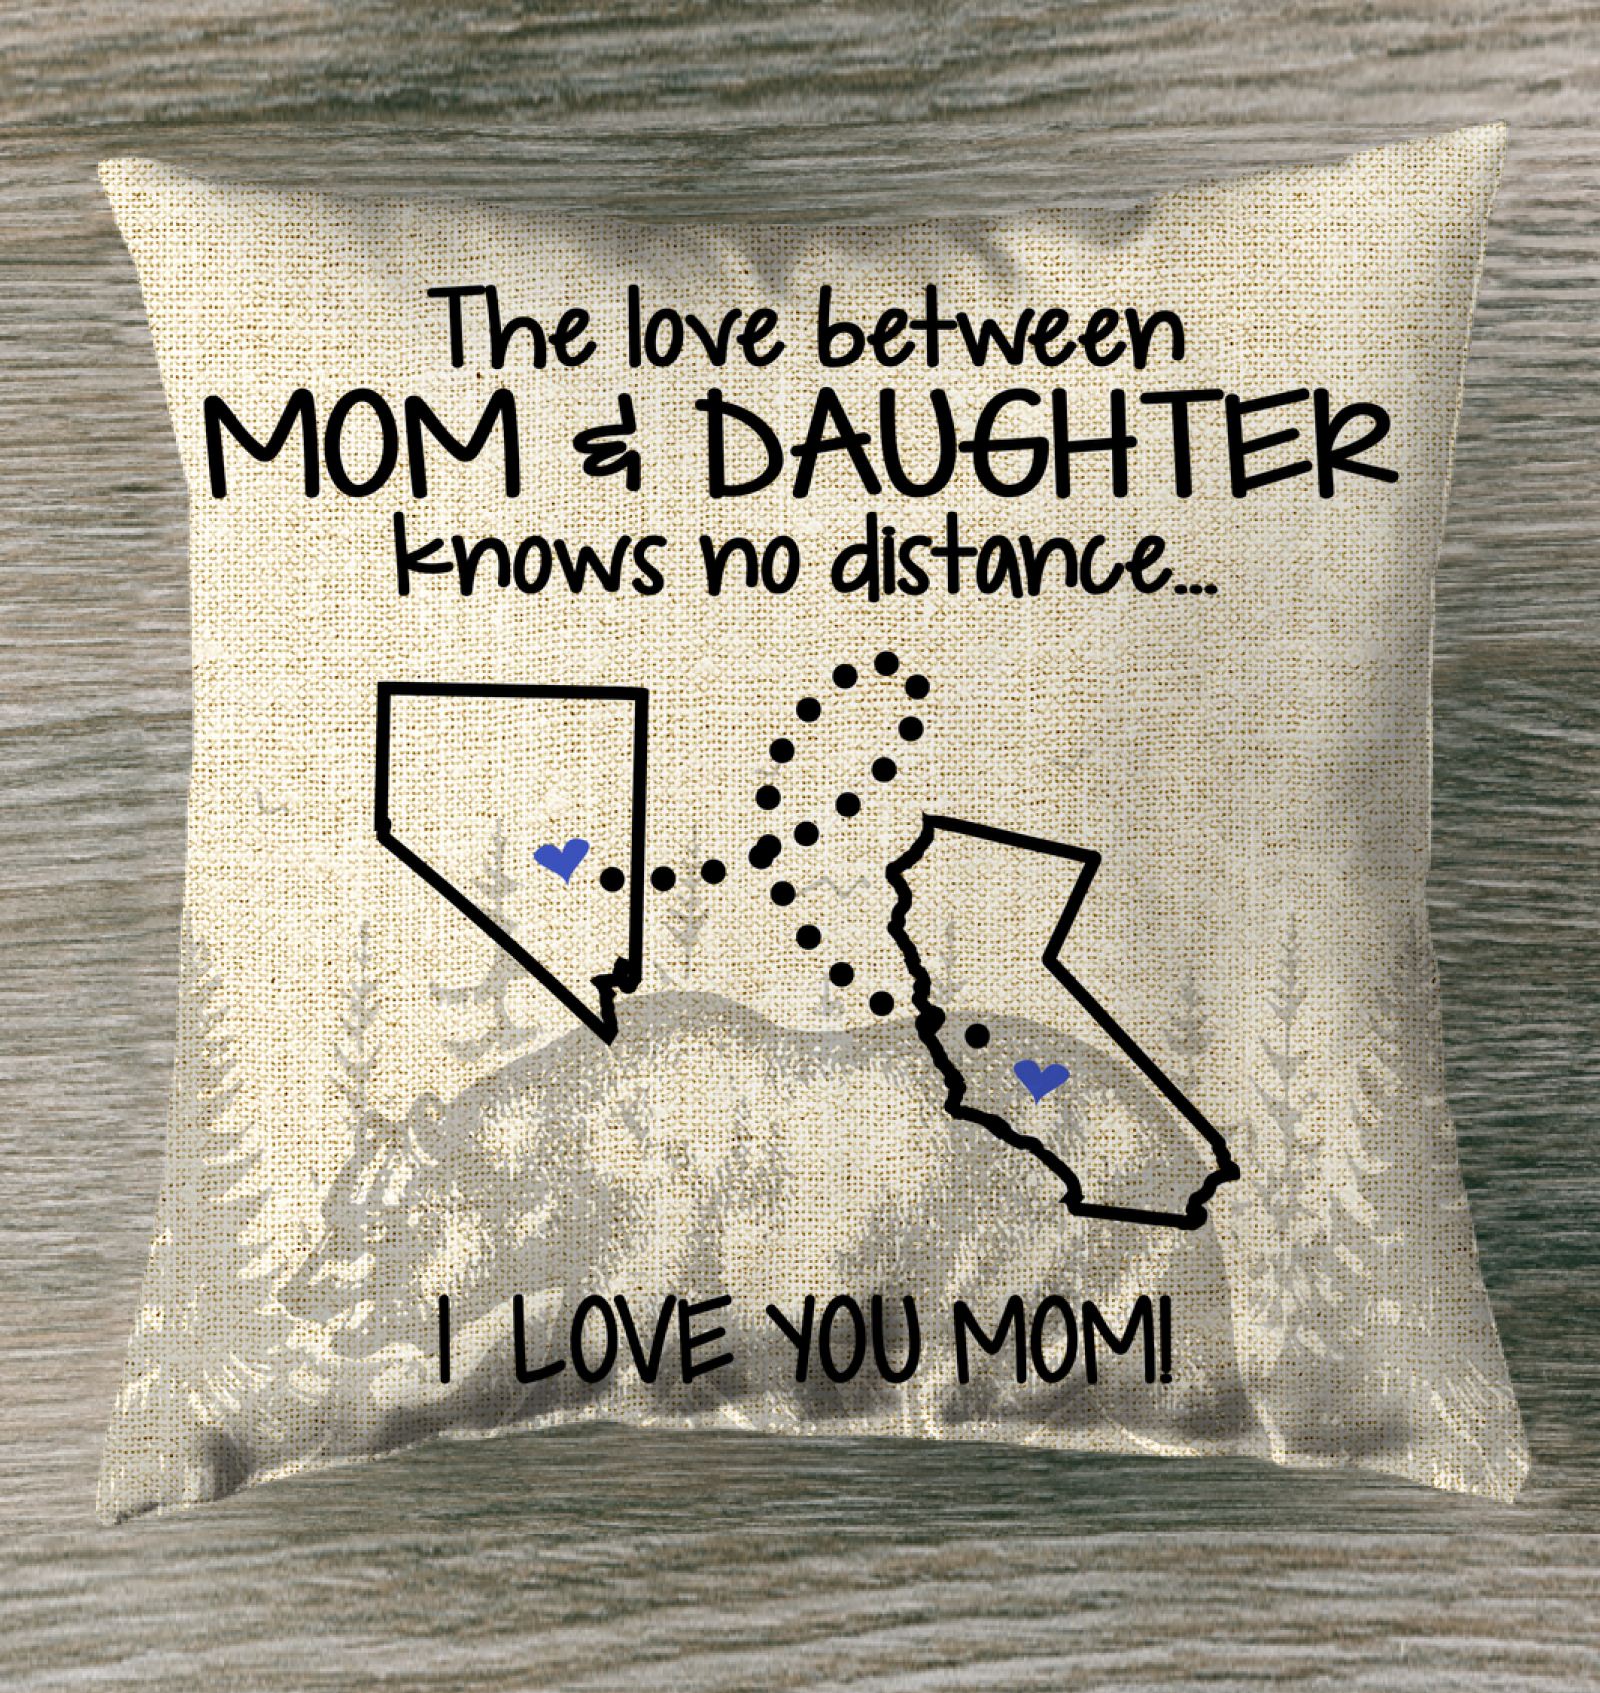 CALIFORNIA NEVADA THE LOVE BETWEEN MOM AND DAUGHTER